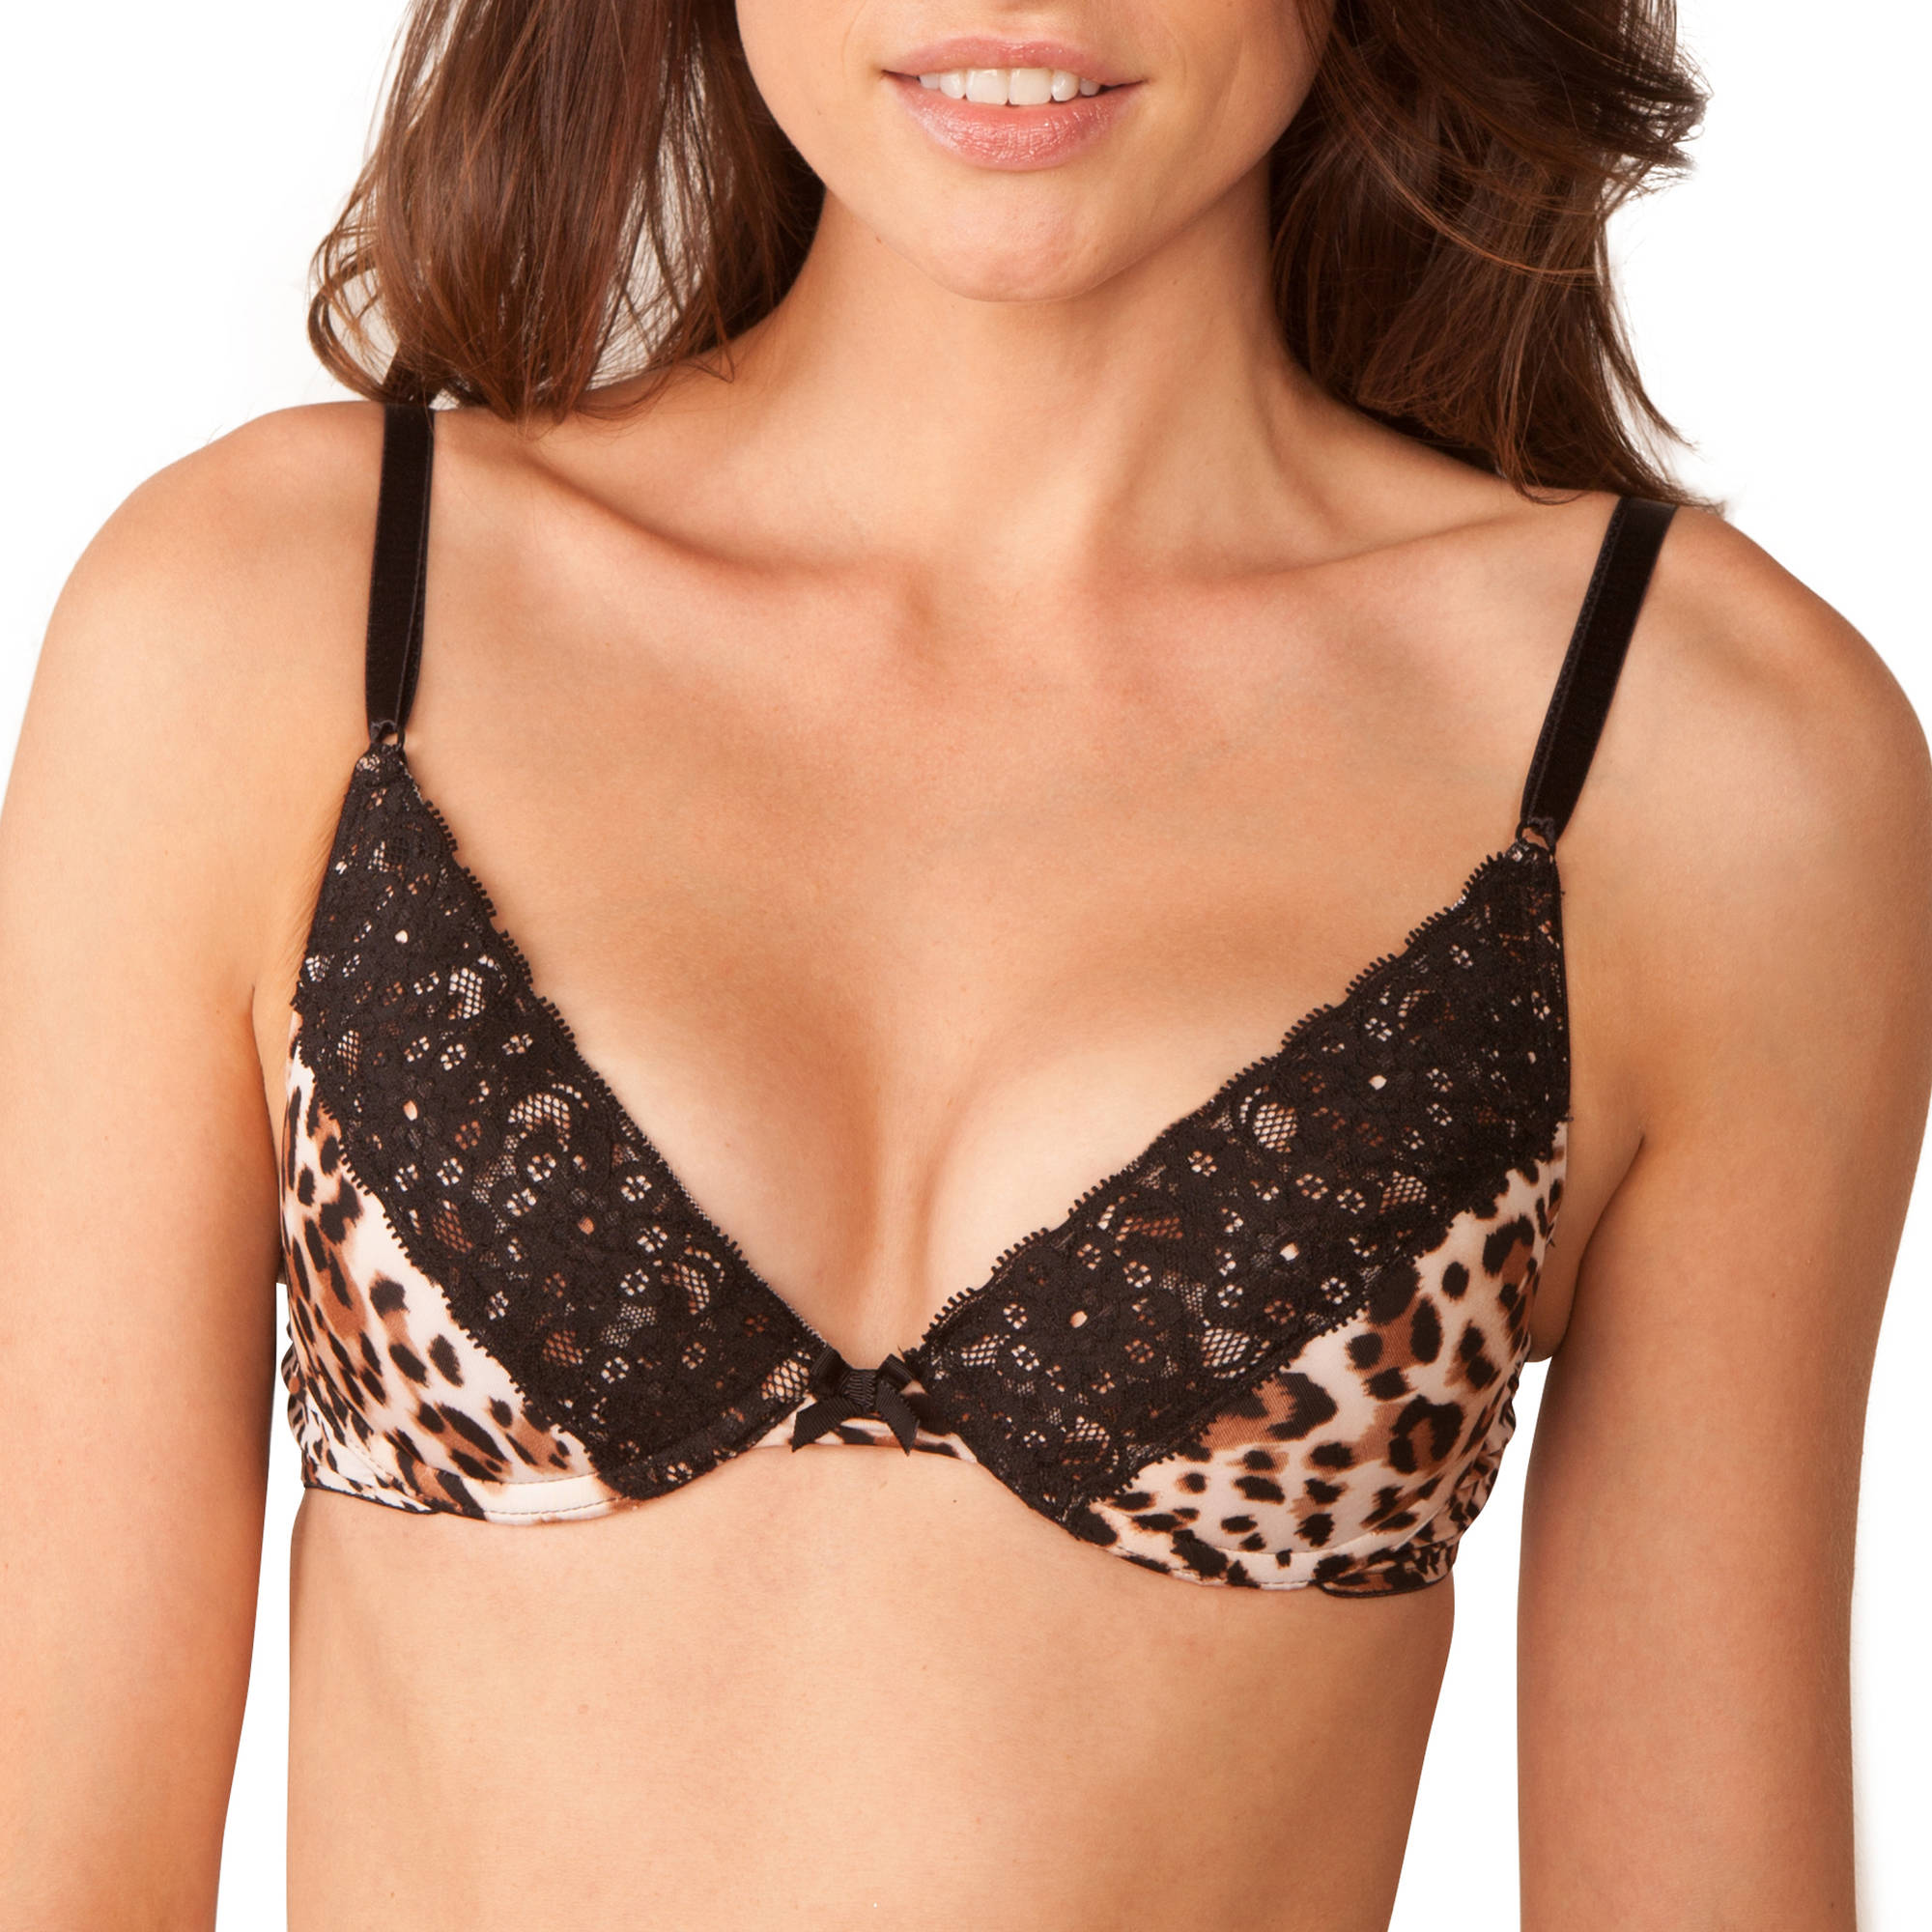 Smart & Sexy Women's Push Up Plunge Bra, Style SA576